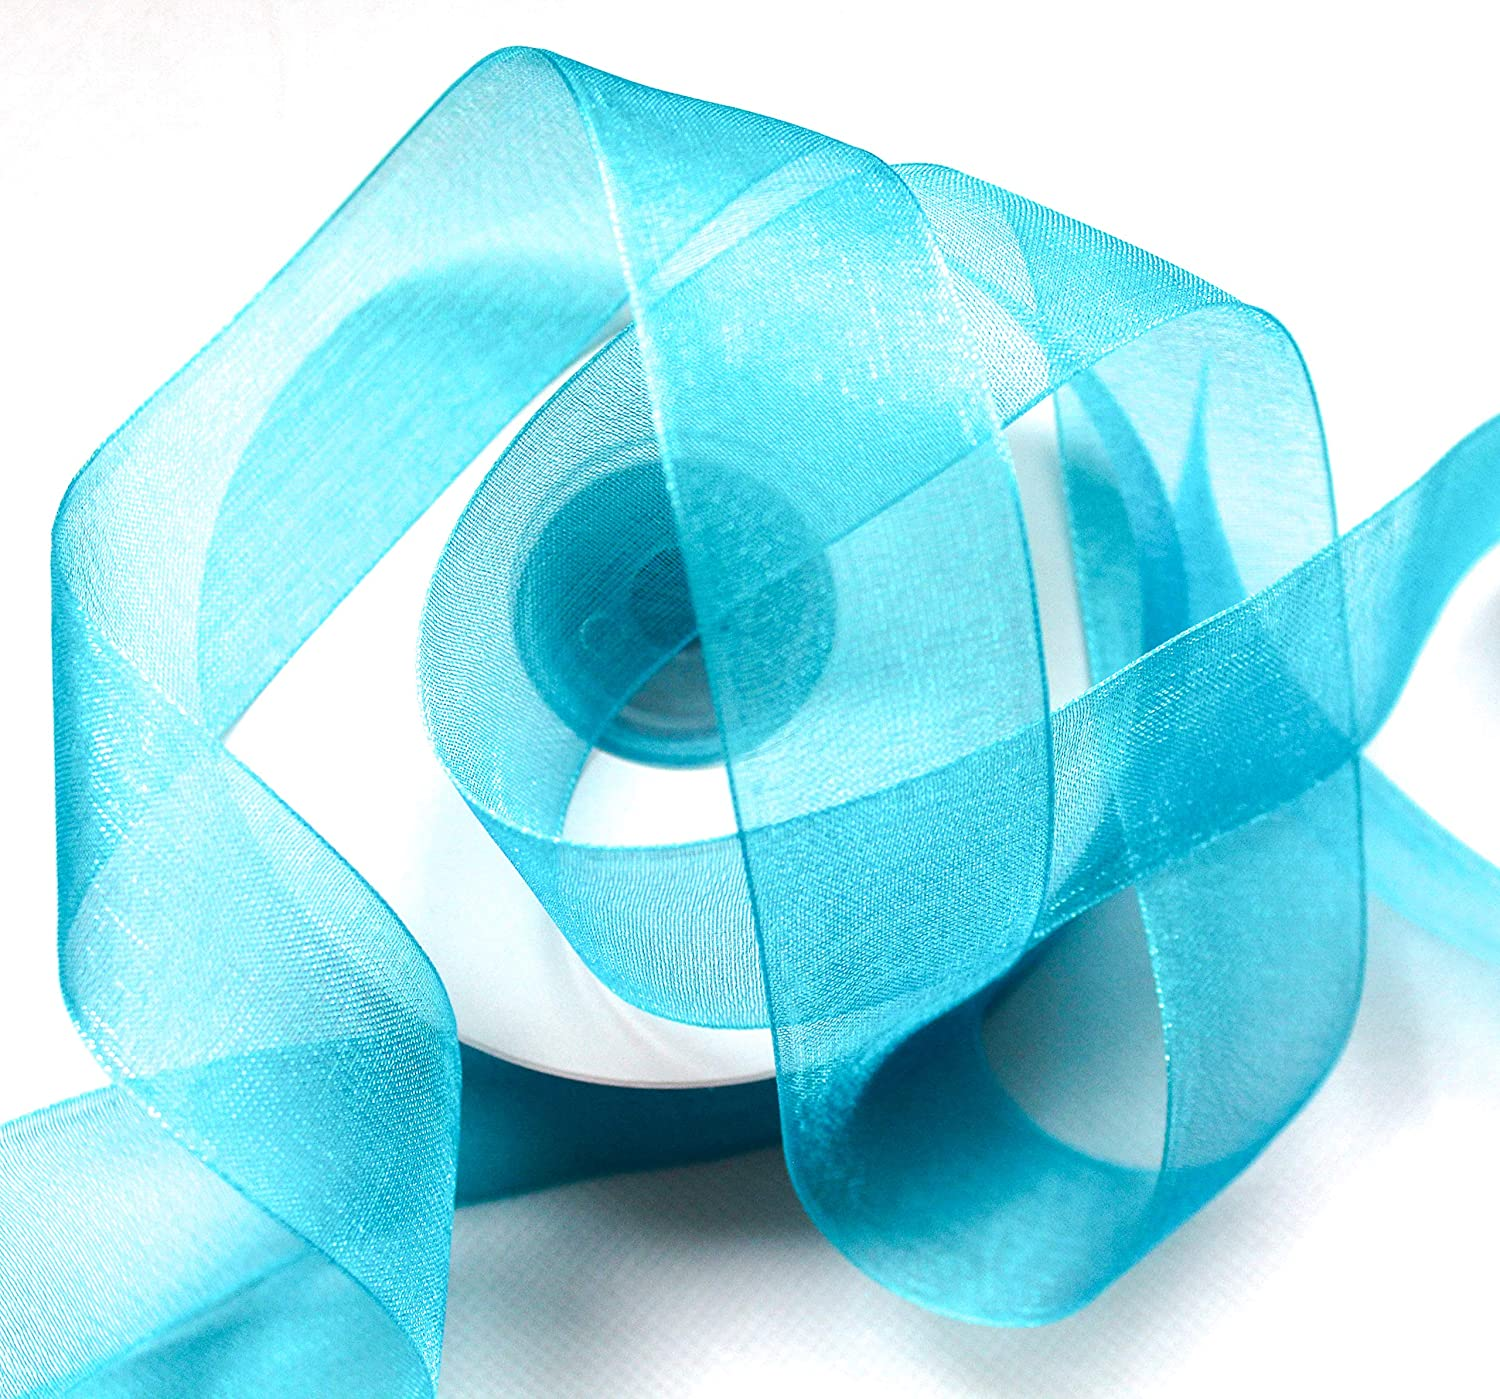 25m Organza Ribbon With Selvedge 2.5 cm Wide apple green